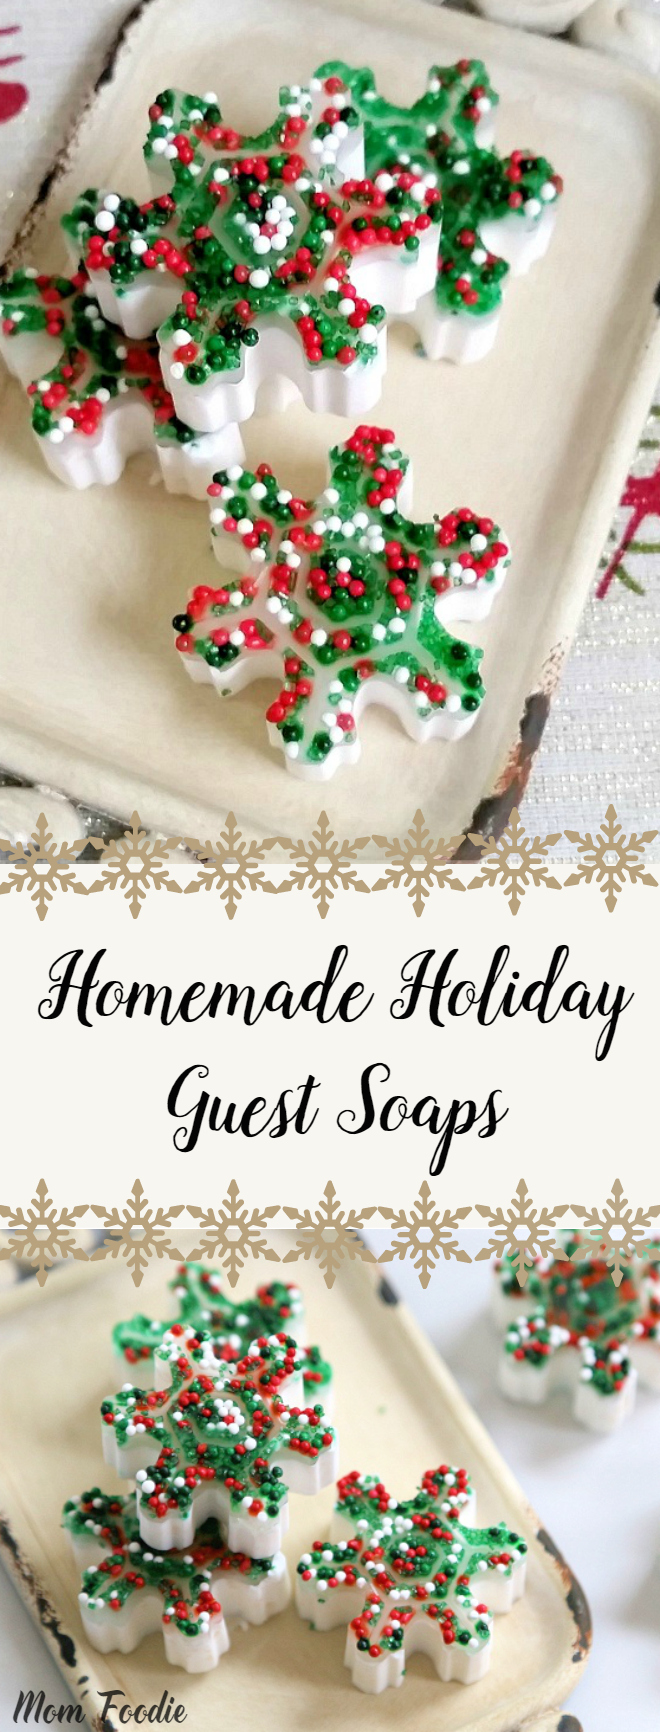 Homemade Holiday Guest Soaps: Easy DIY Gifts for Christmas - Mom Foodie